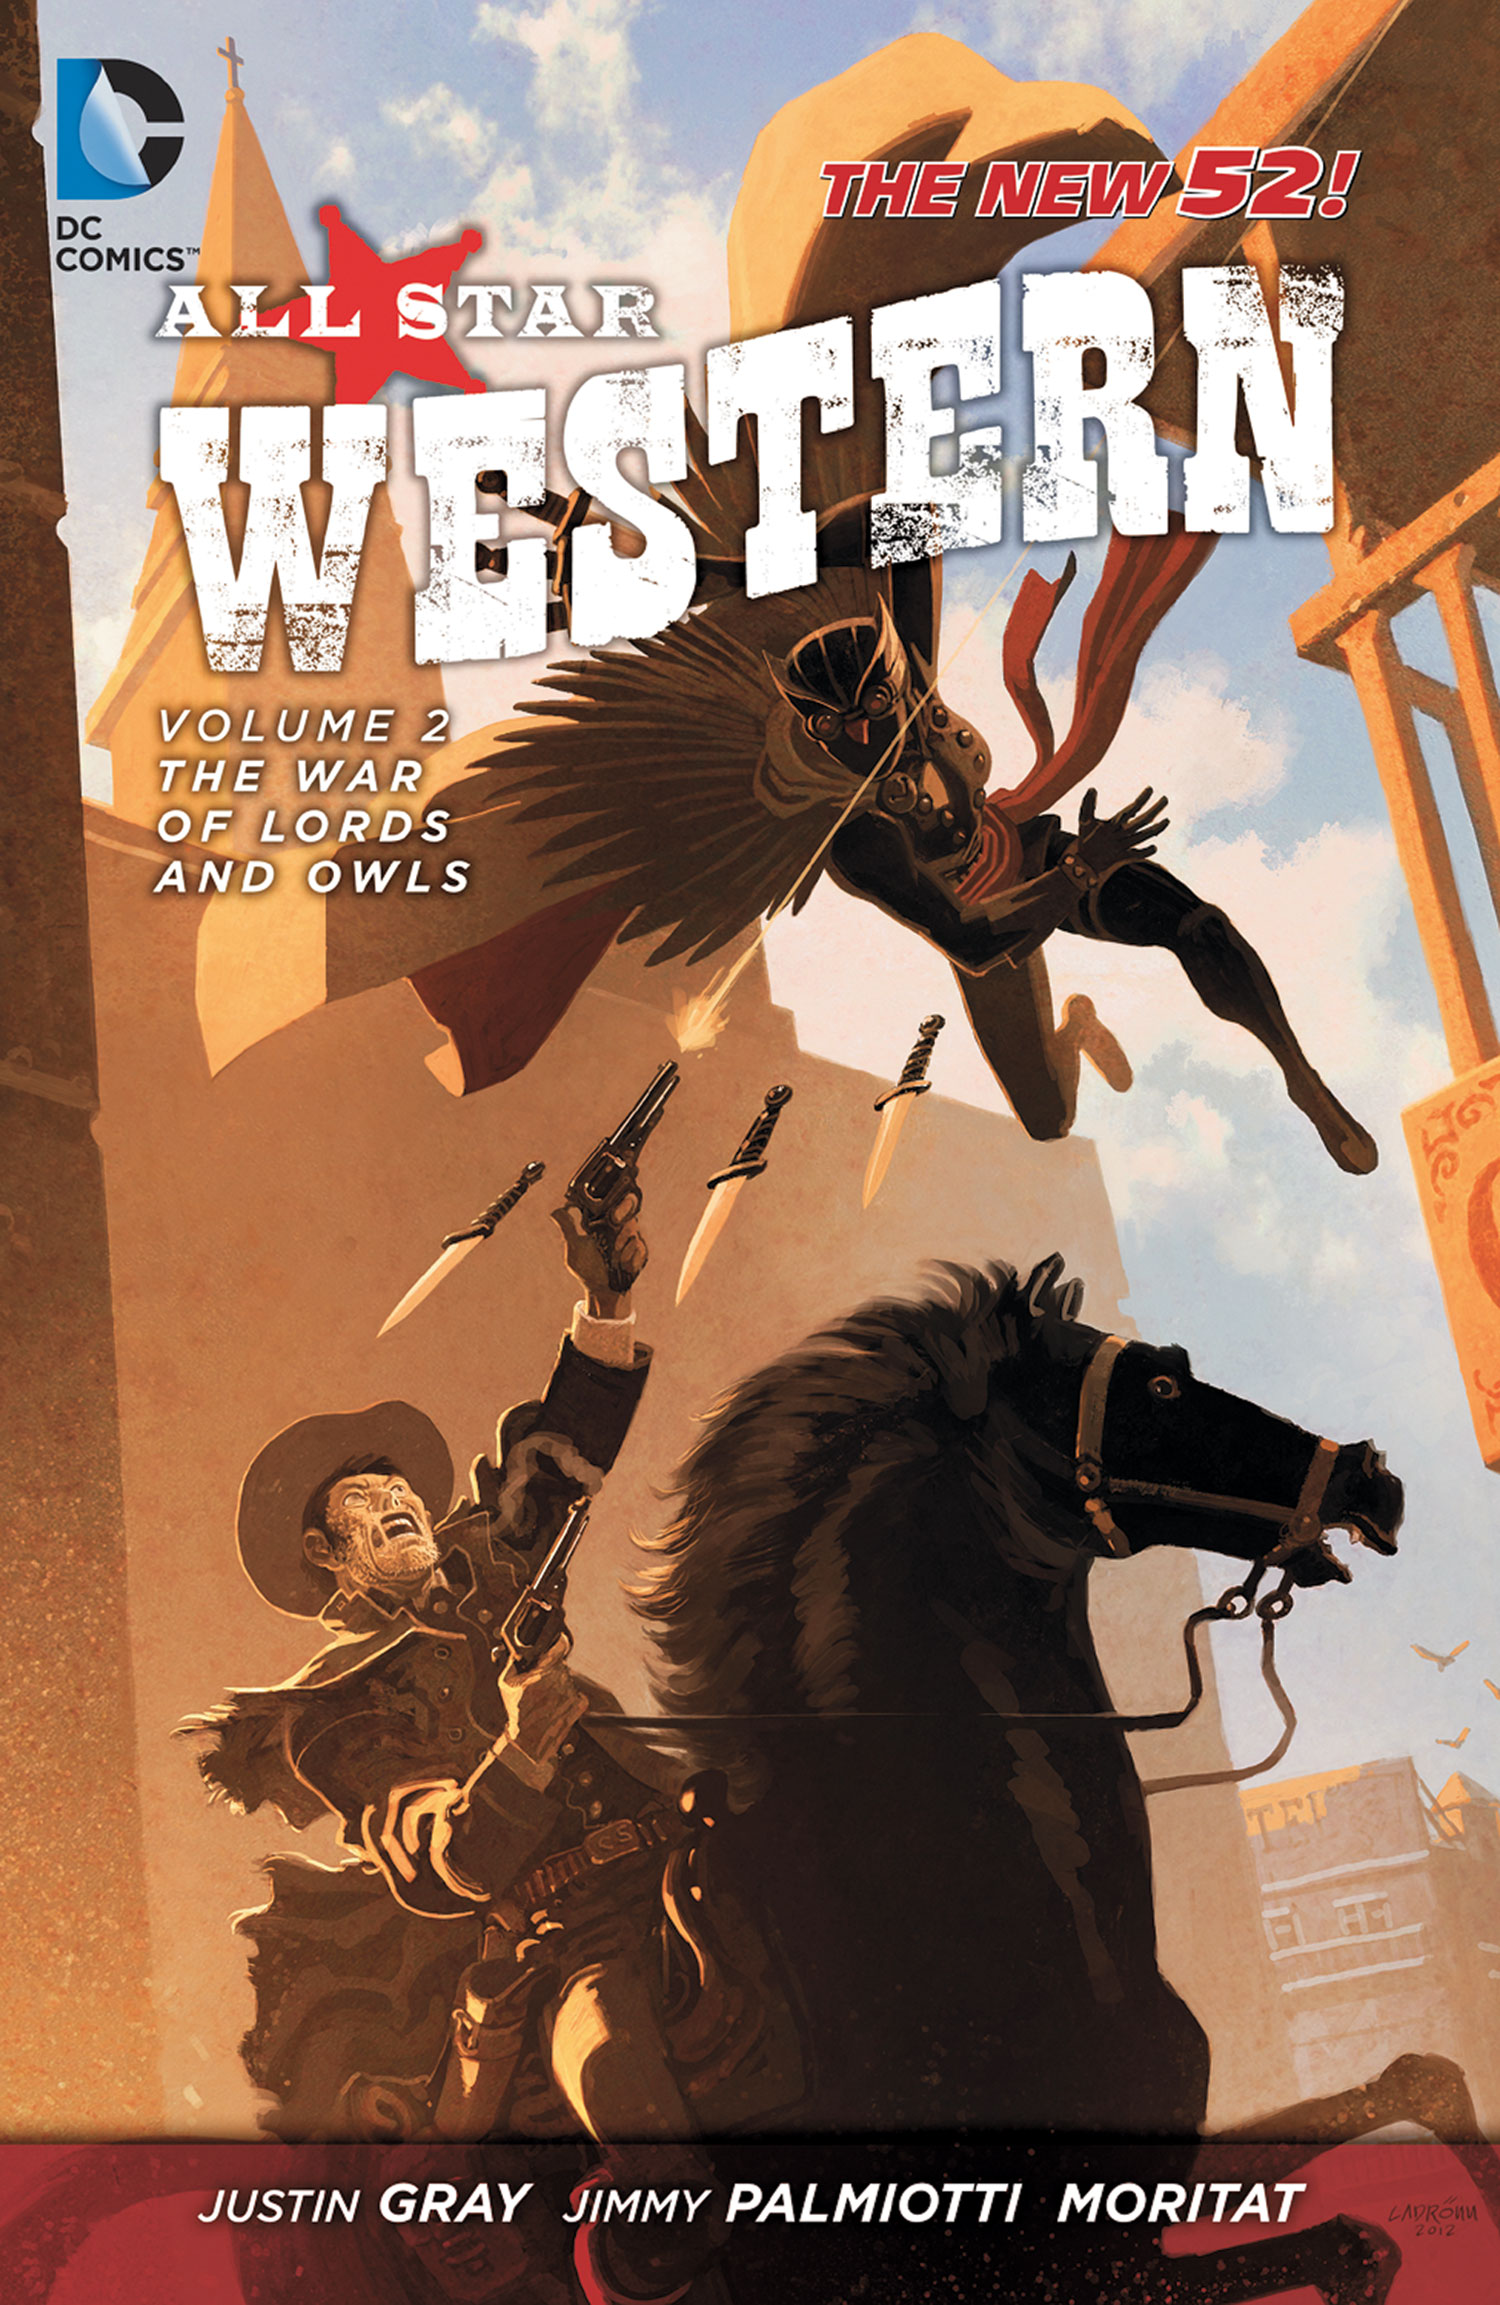 [Review VO] All-Star Western Vol. 2 36